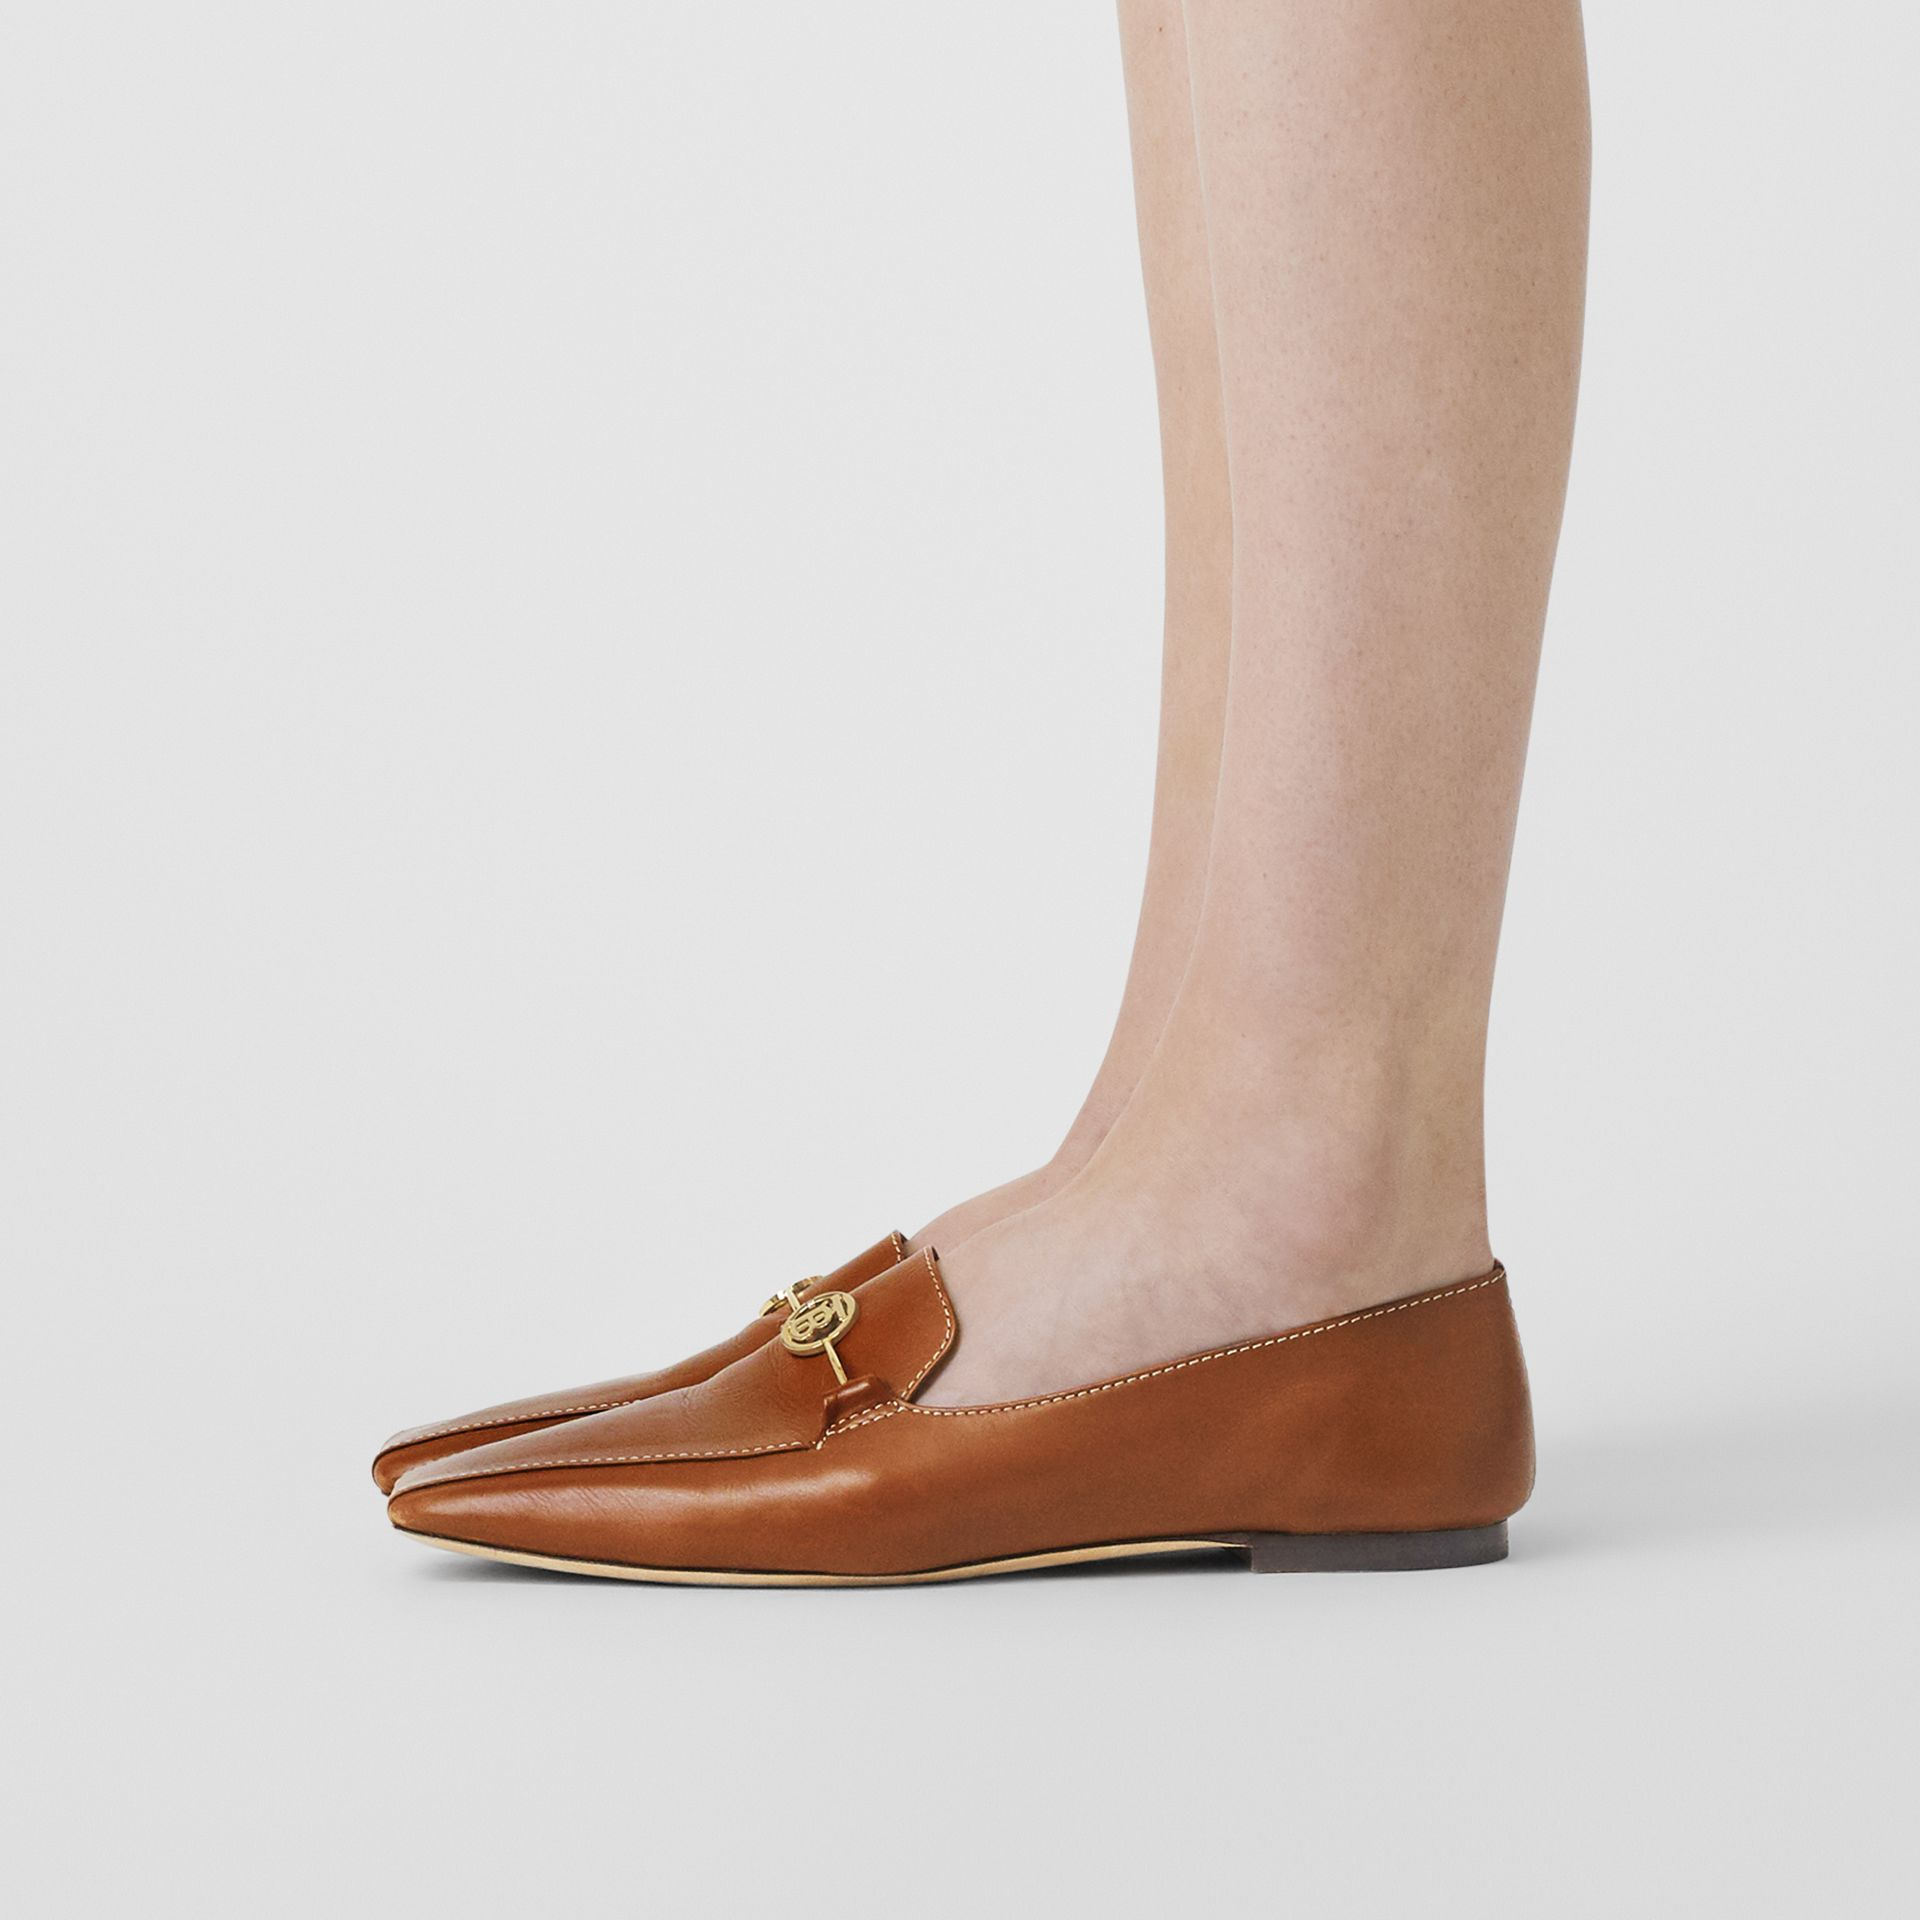 Monogram Motif Leather Loafers in Tan - Women | Burberry Australia - gallery image 2